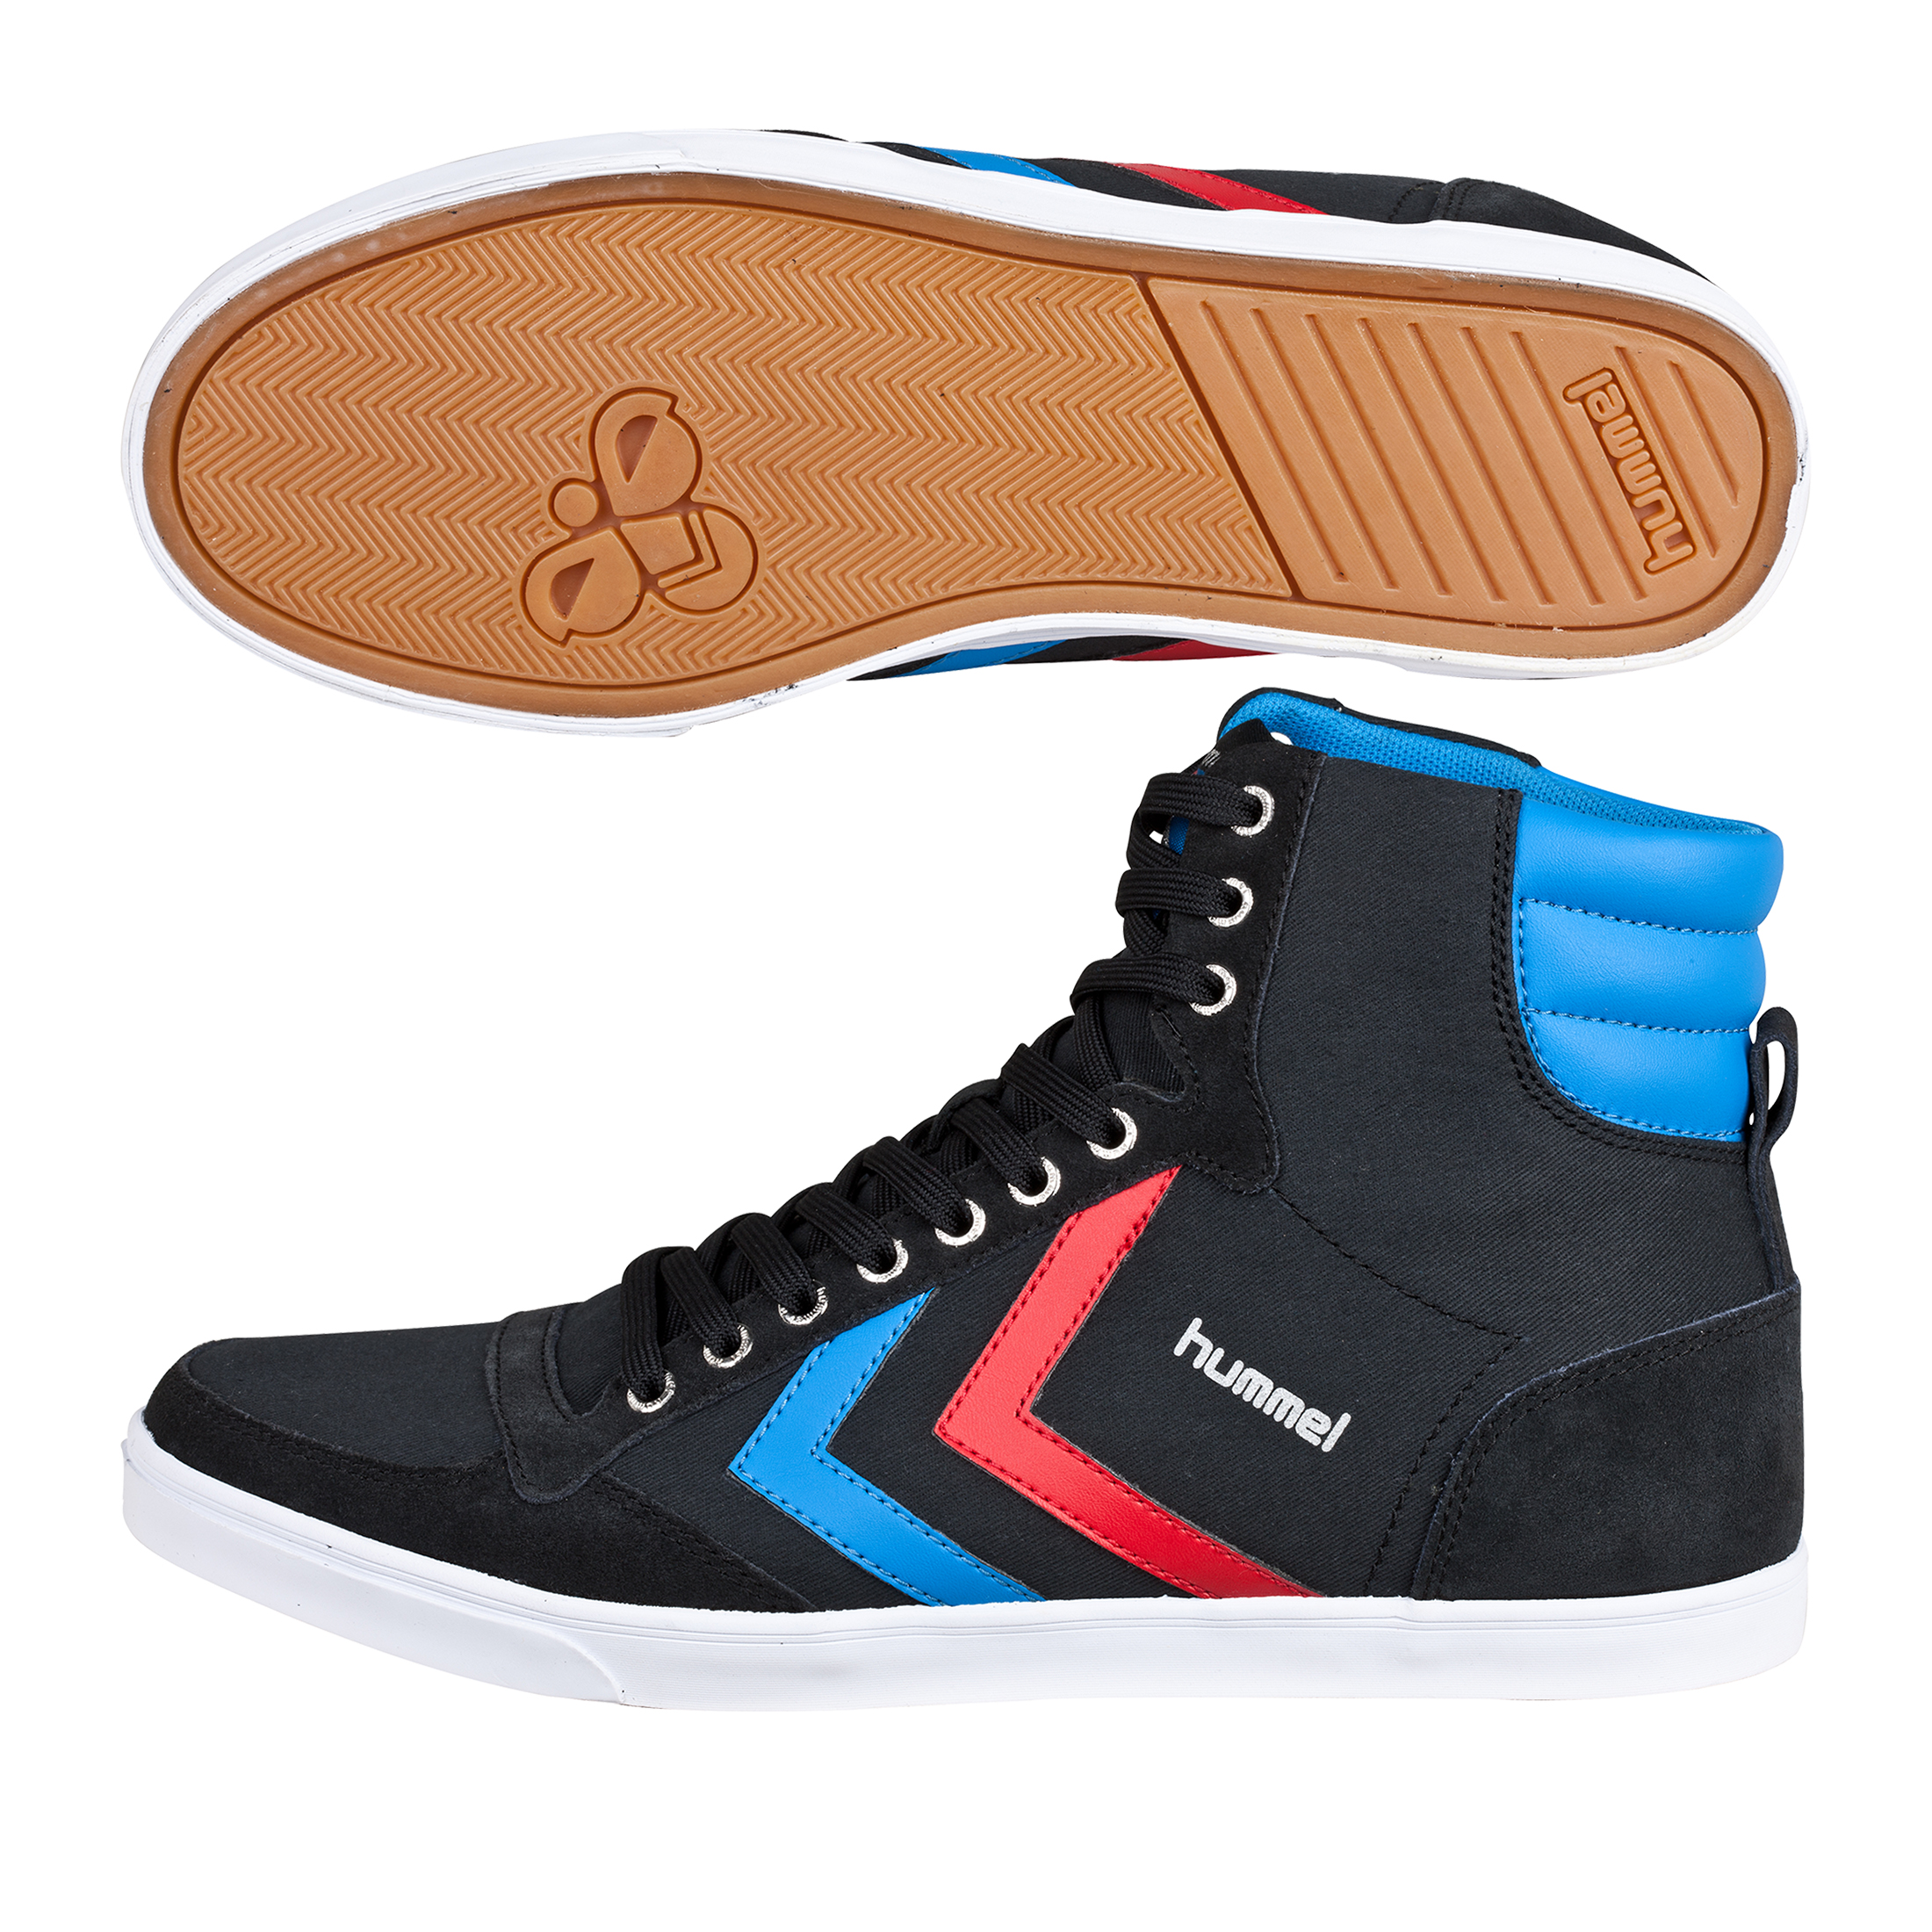 Hummel Slimmer Stadil High Canvas Trainers - Black/Brilliant Blue/Ribbon Red